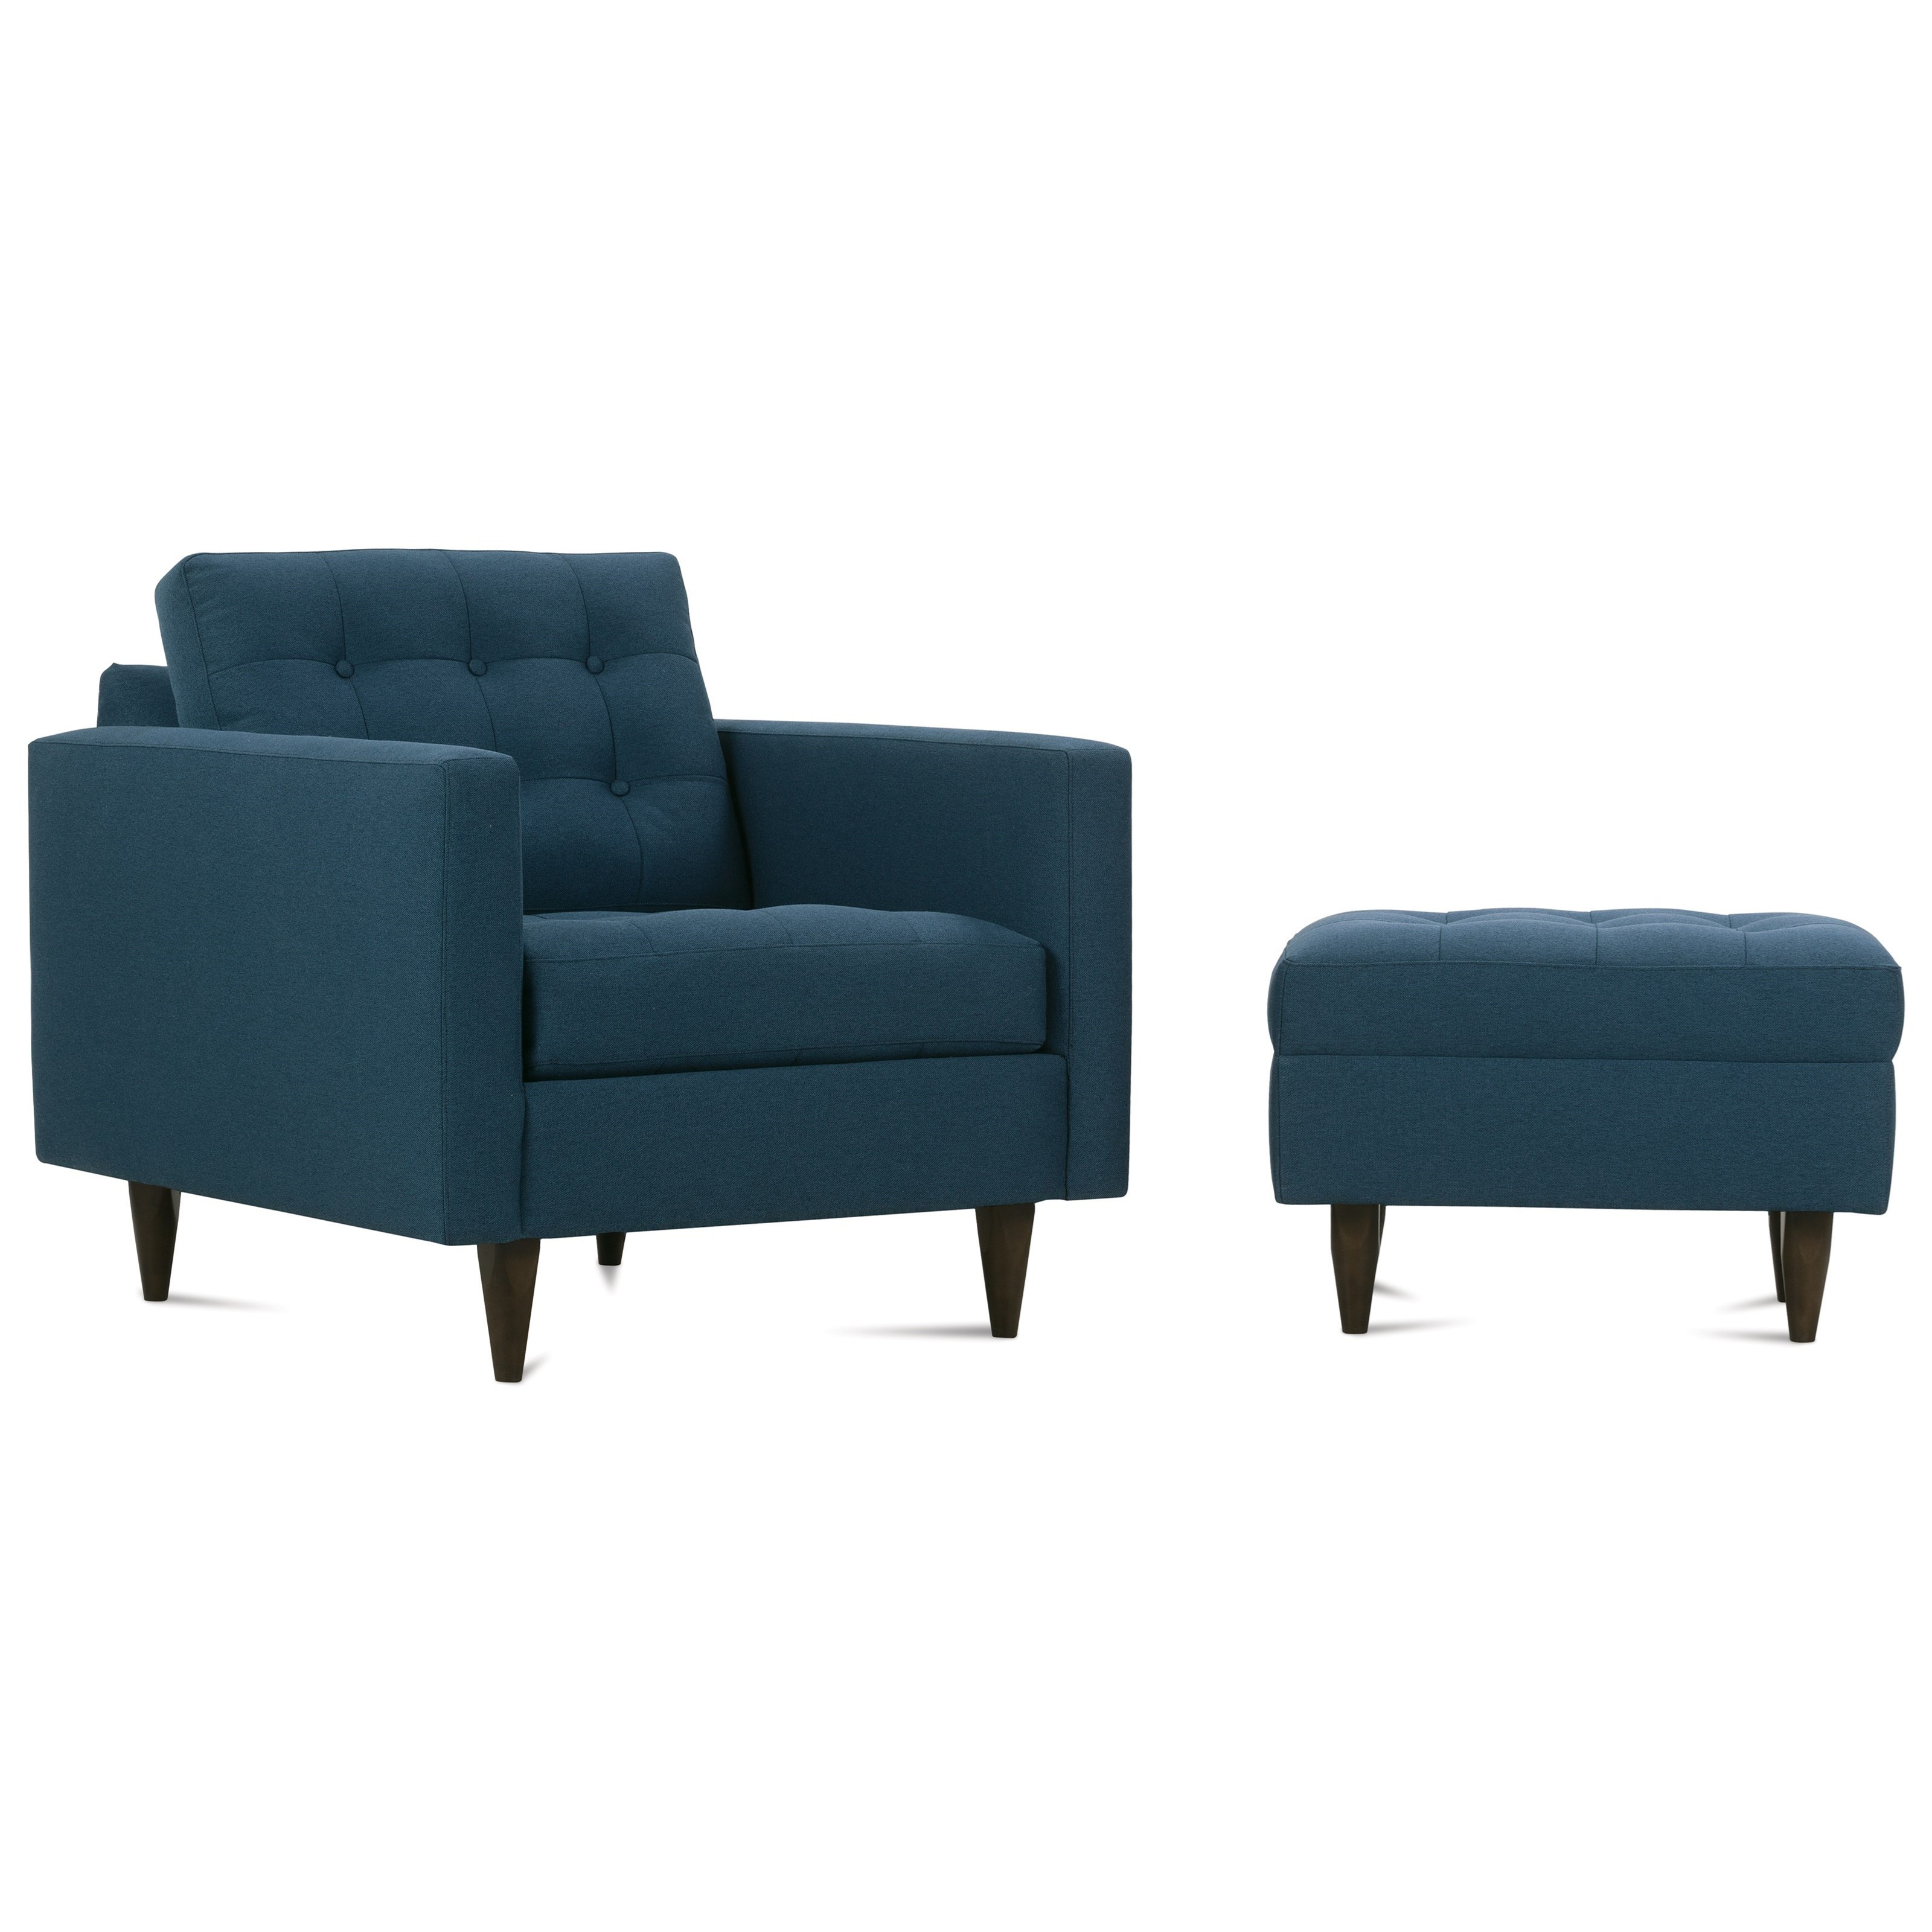 Modern Mix Chair and Ottoman Set by Rowe at Baer's Furniture